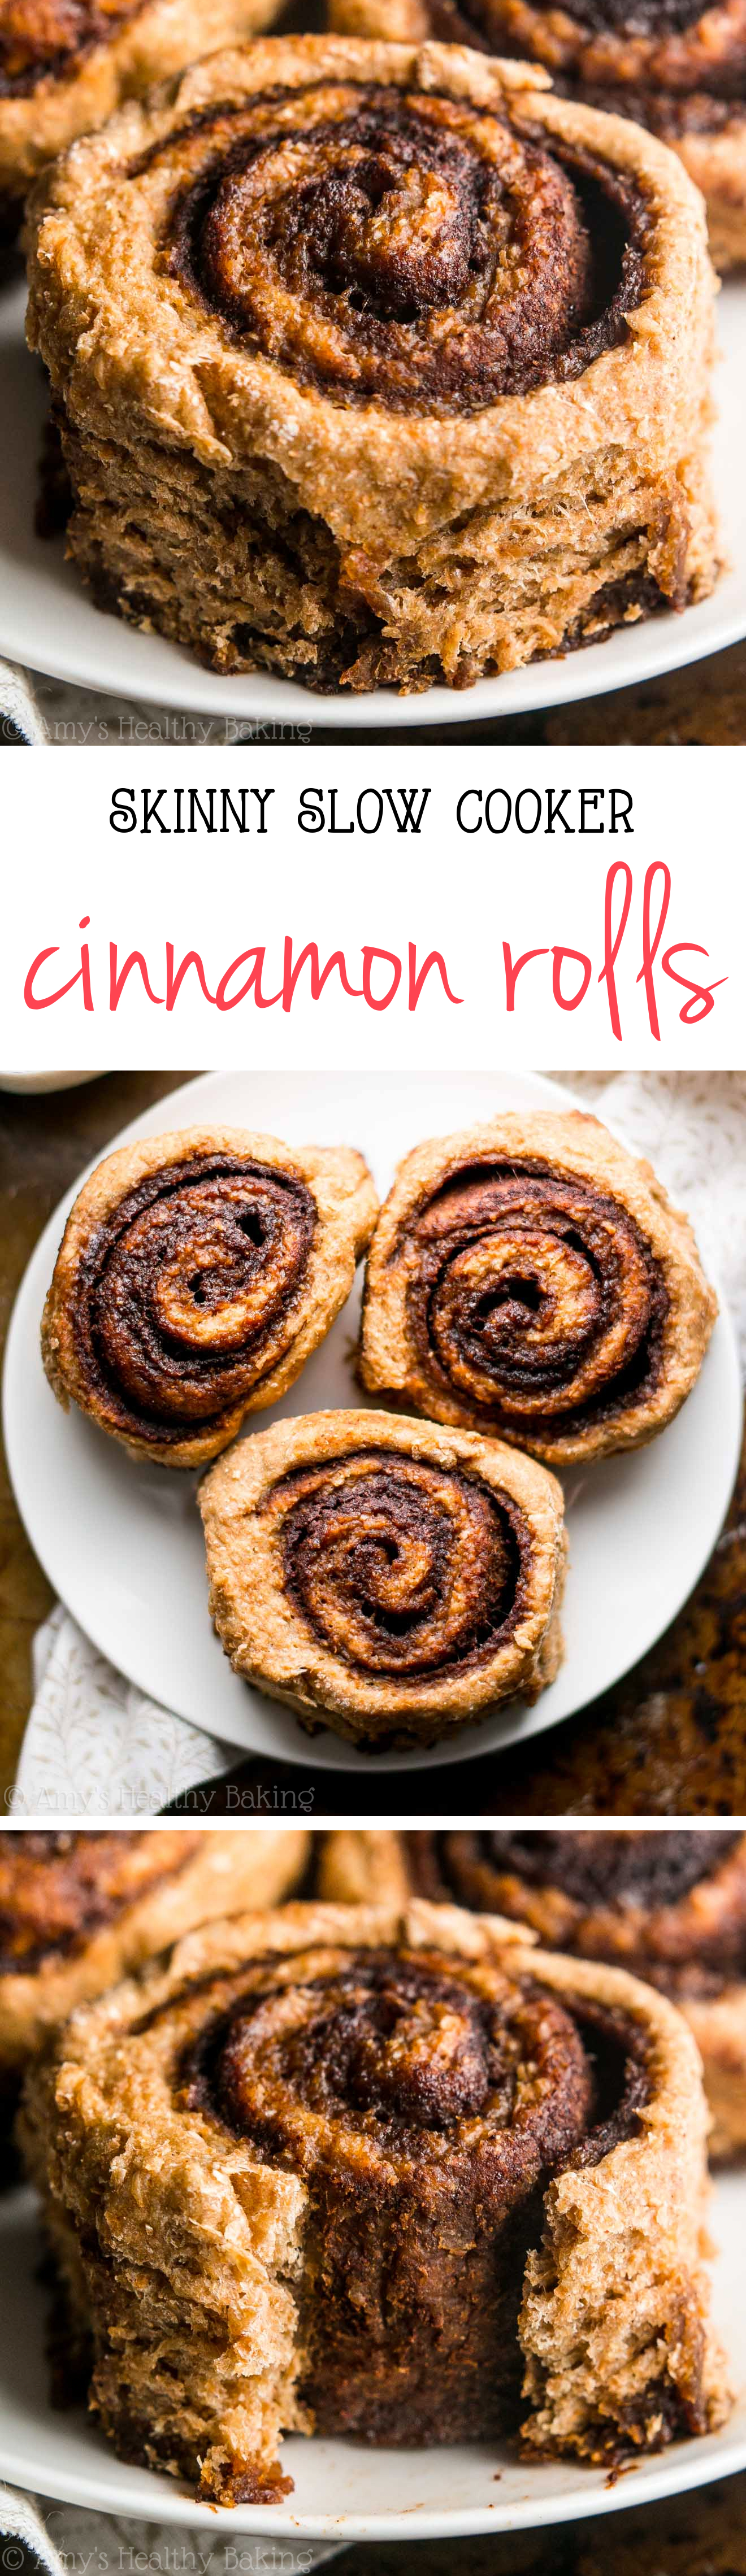 Skinny Slow Cooker Cinnamon Rolls -- my family called these the BEST they've ever had! They don't taste healthy at all & they're just 112 calories!